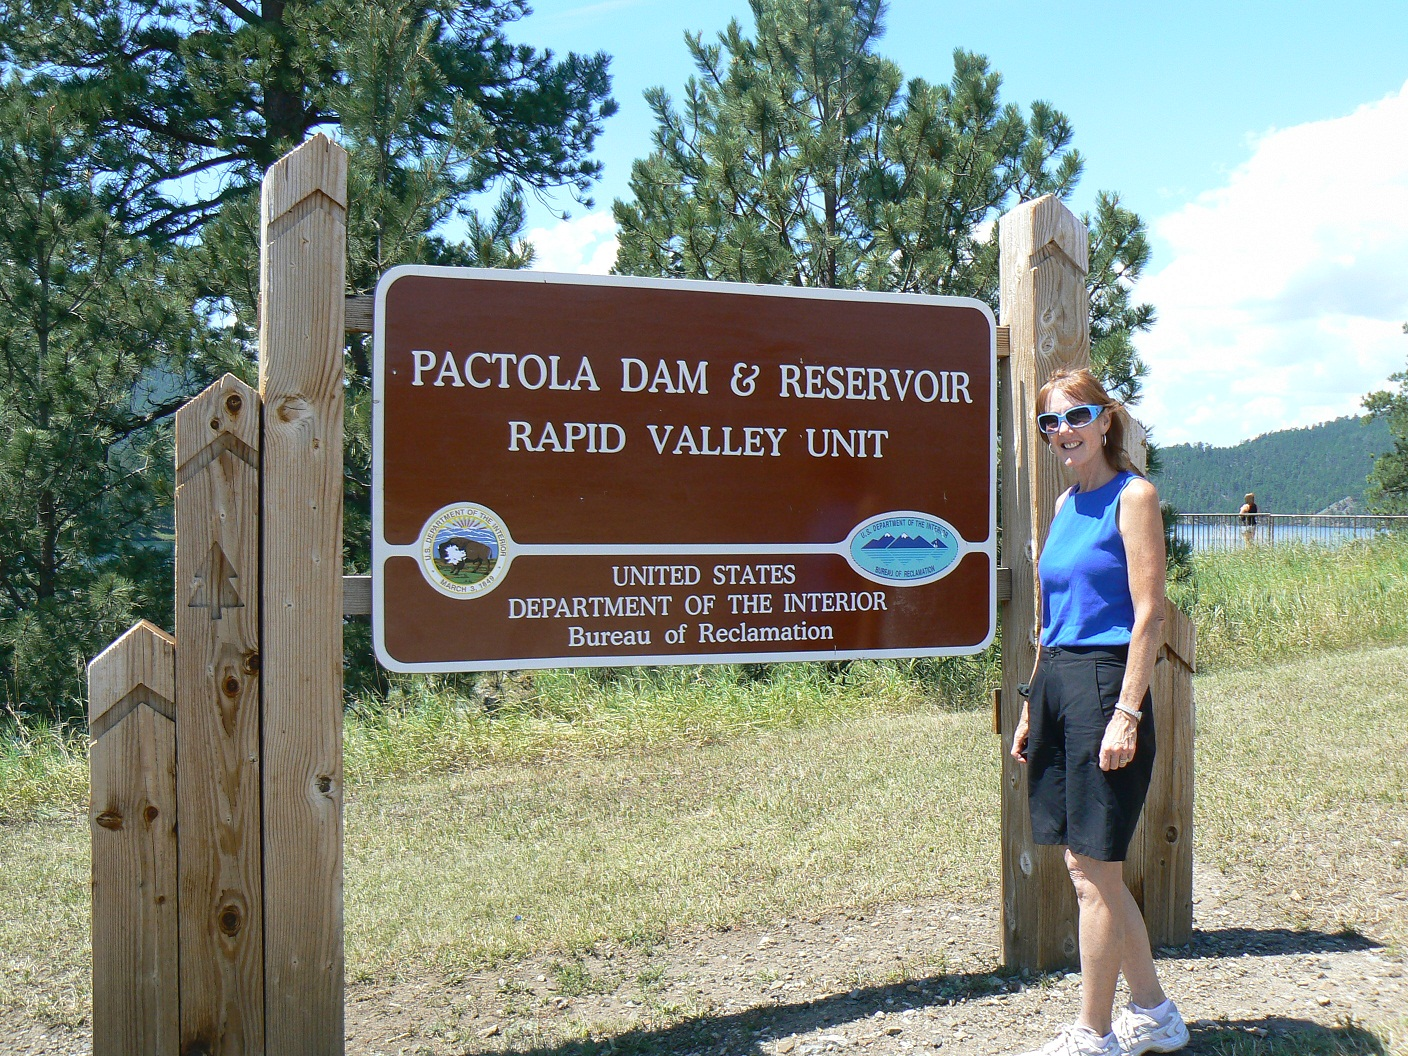 Click image for larger version  Name:Pat and Pactola Reservoir Hill City.jpg Views:49 Size:863.1 KB ID:136866